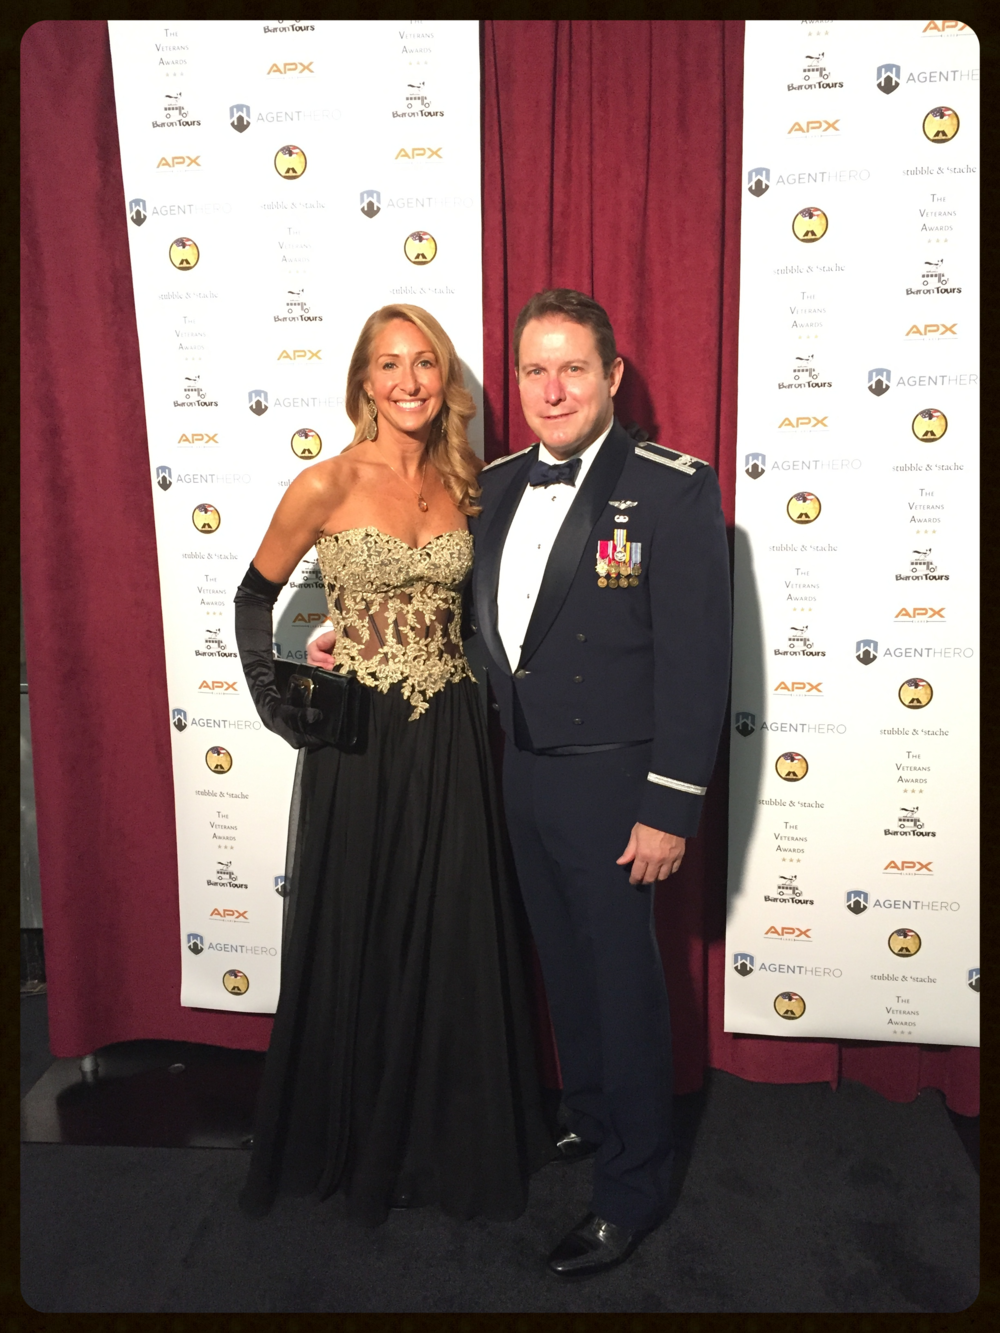 Karen Herson, President of Concepts, Inc. and Ken Plaks, COL, United States Air Force (RET) On the Black Carpet